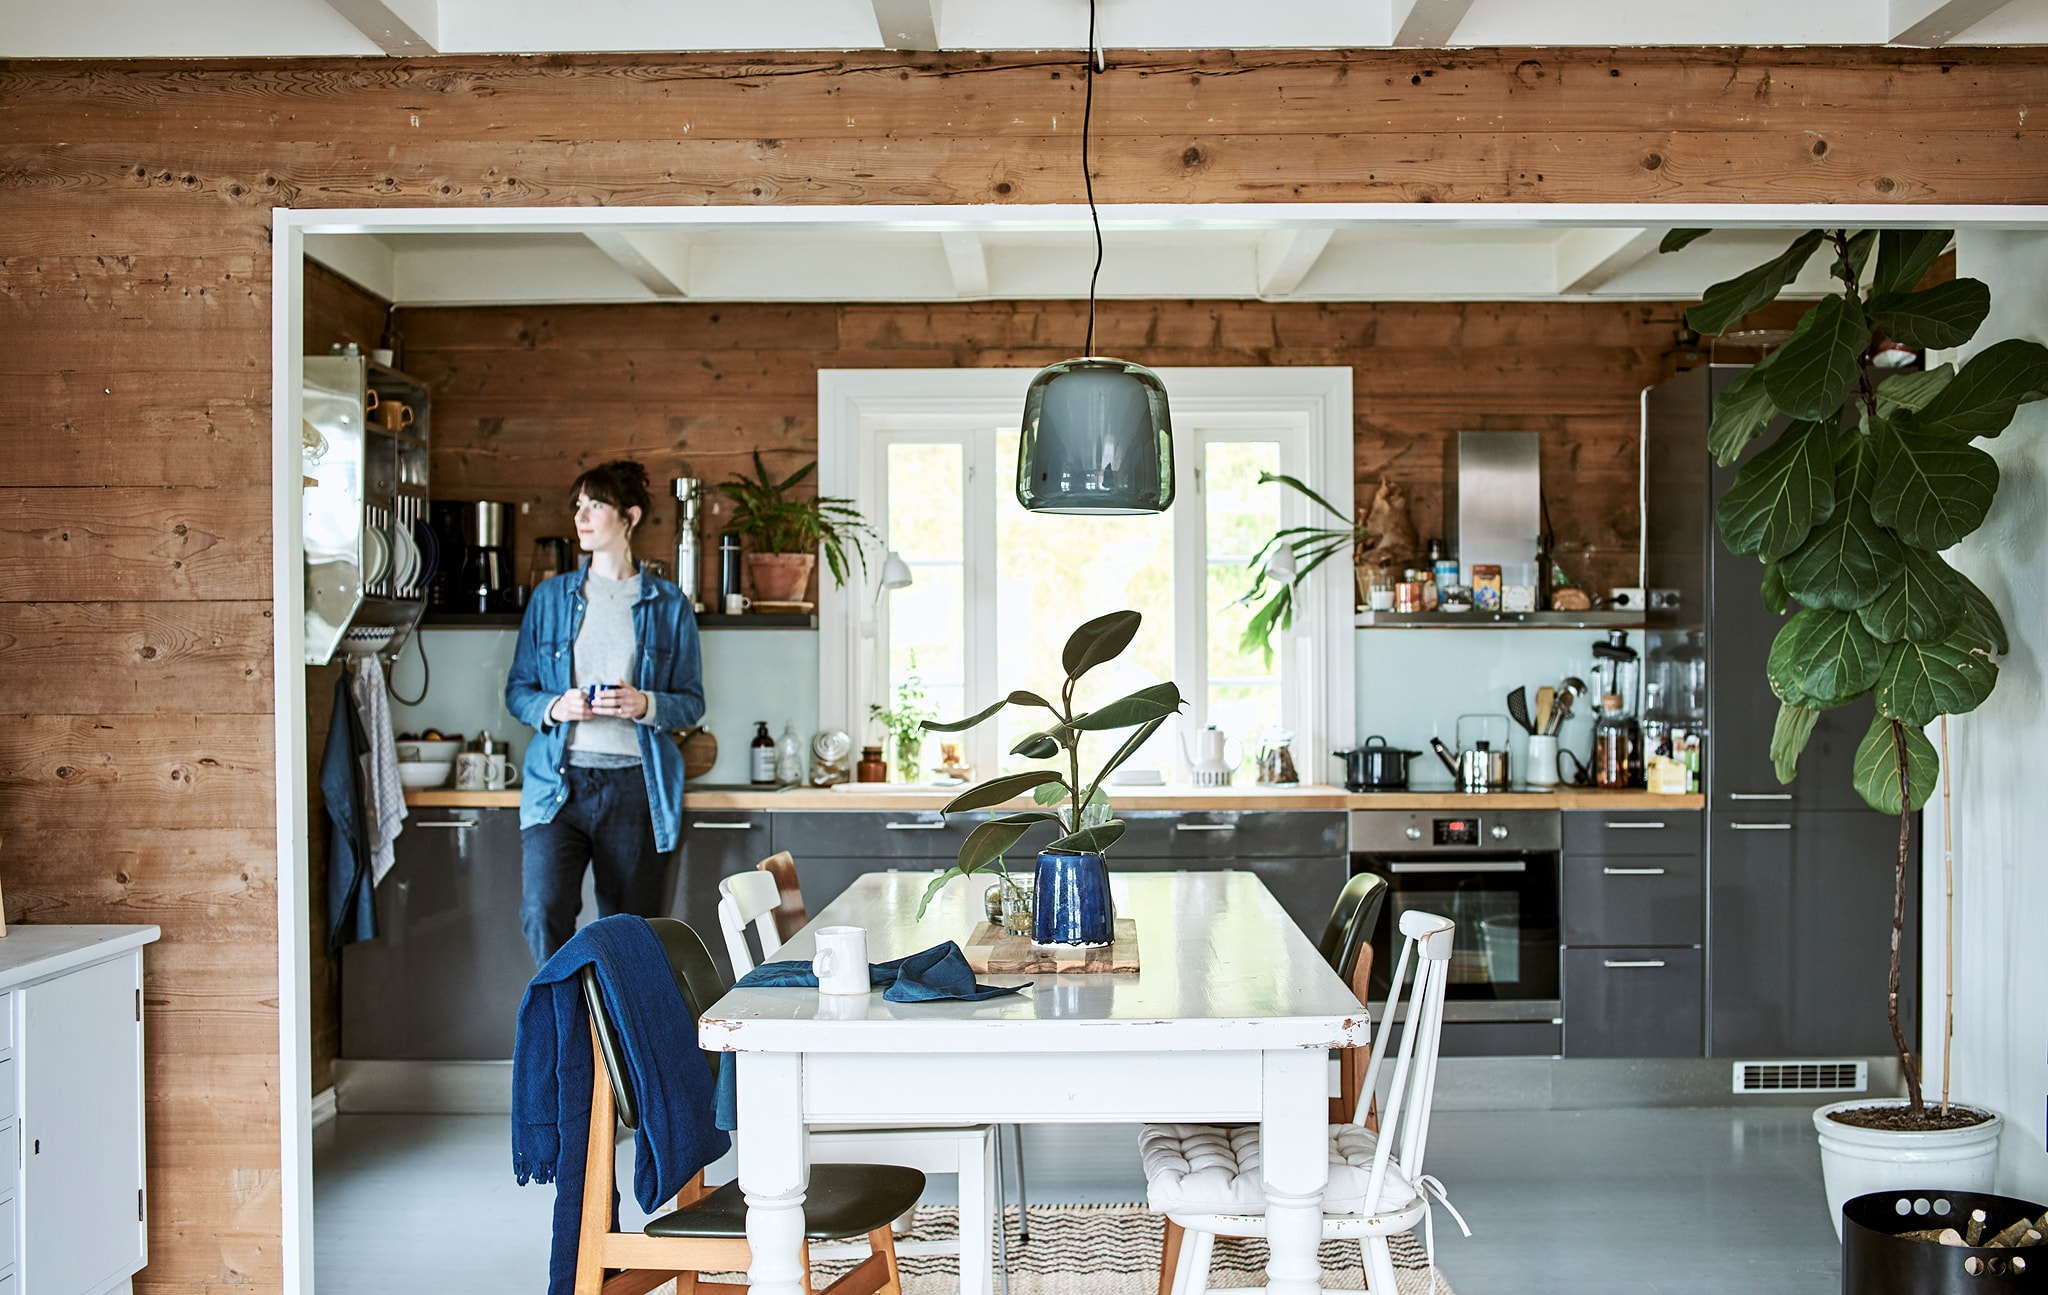 A woman leans on a shiny grey cabinet in a galley kitchen that opens to a dining room with white wood table and chairs.